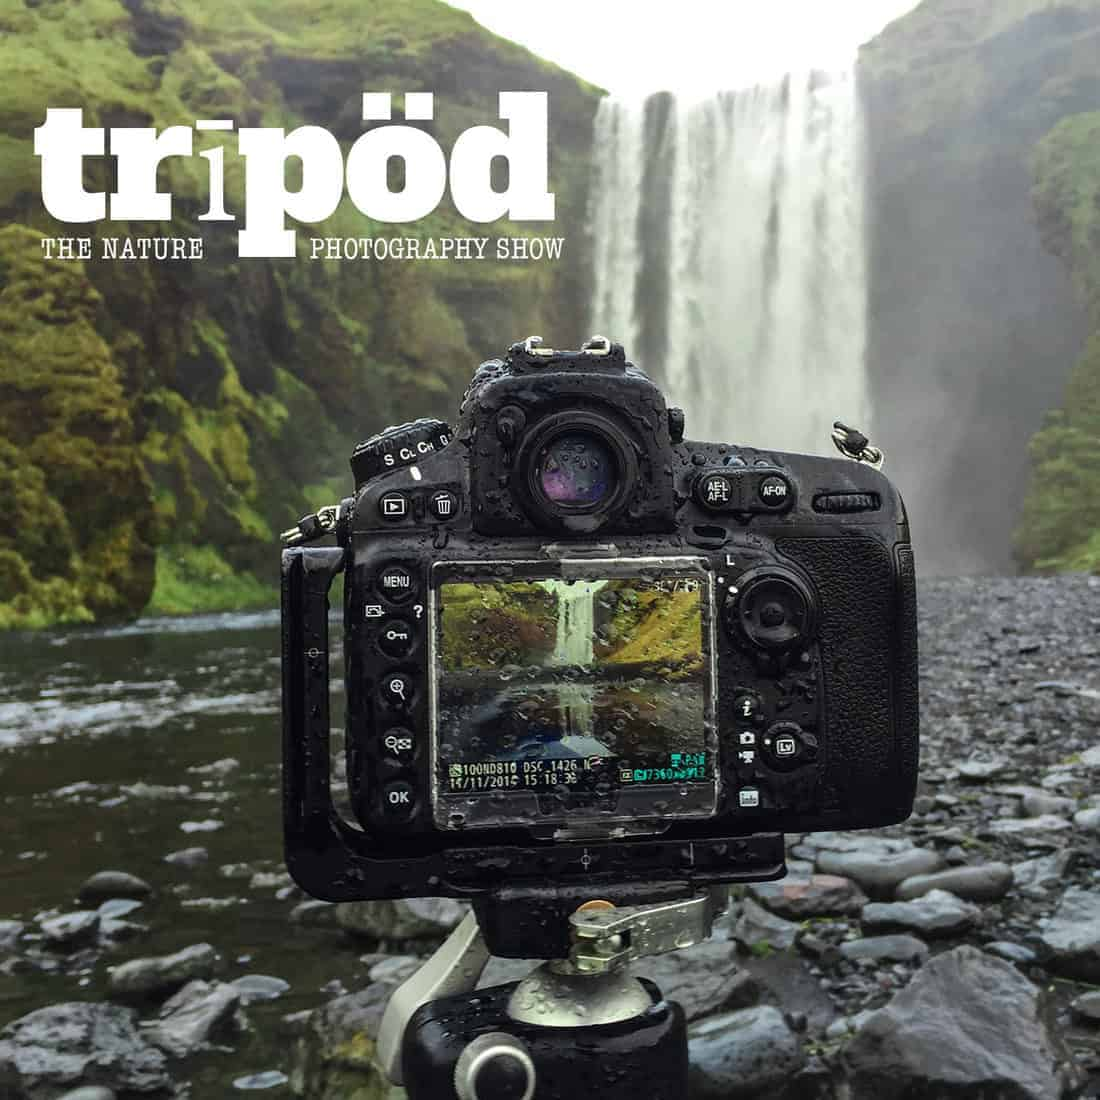 Tripod: The Nature Photography Show by Improve Photography